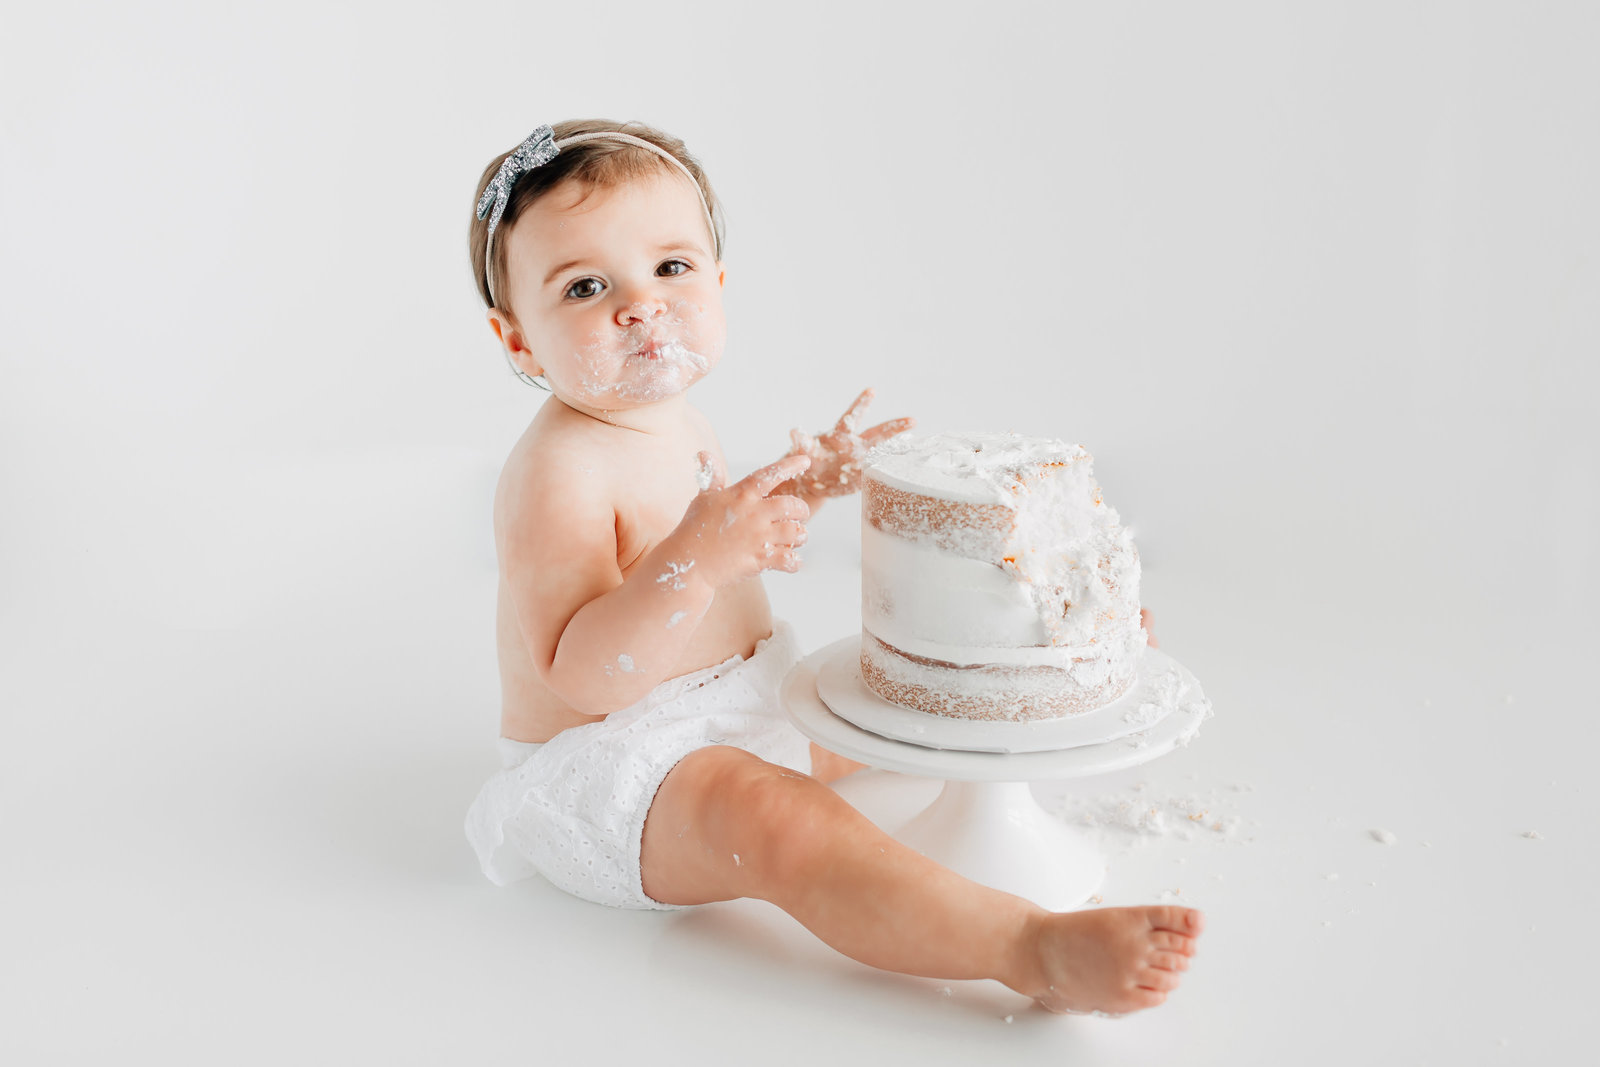 St_Louis_Baby_Photographer_Kelly_Laramore_Photography1-9